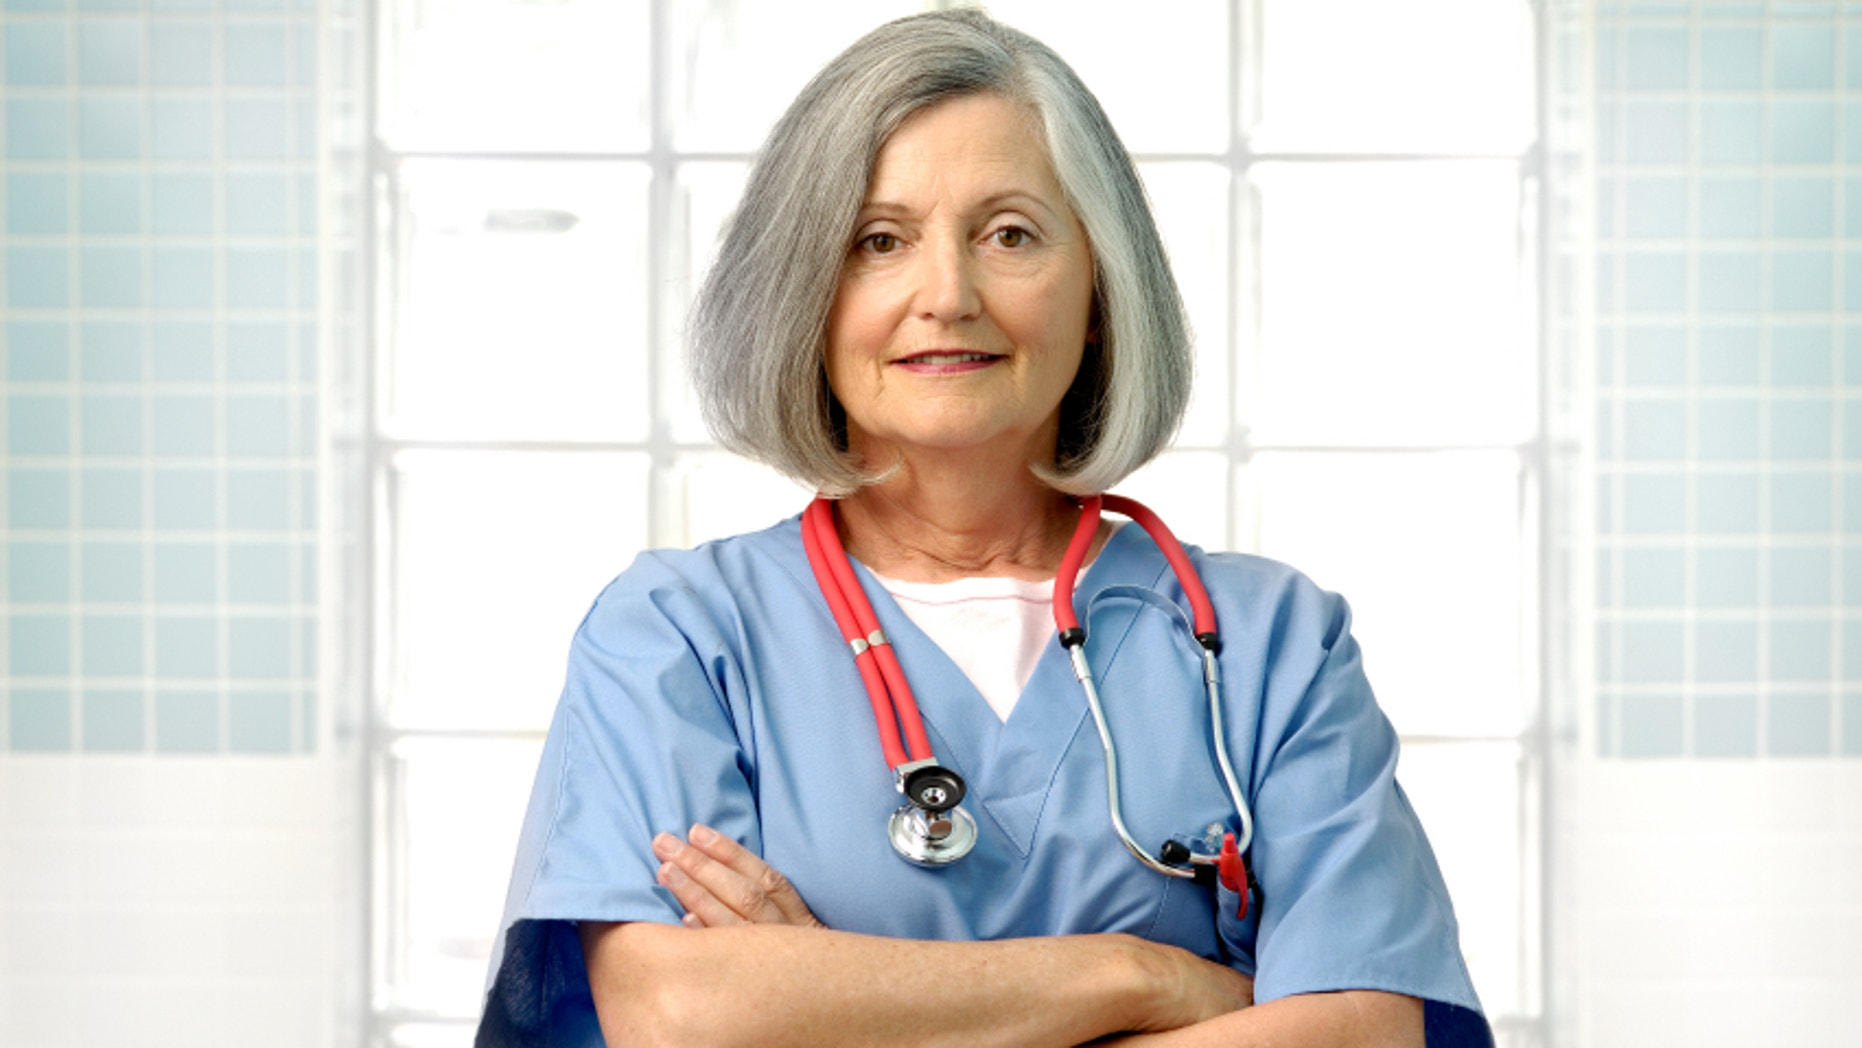 senior female doctor stands with her arms crossed and wears blue scrubs with a  red stethoscope around her neck